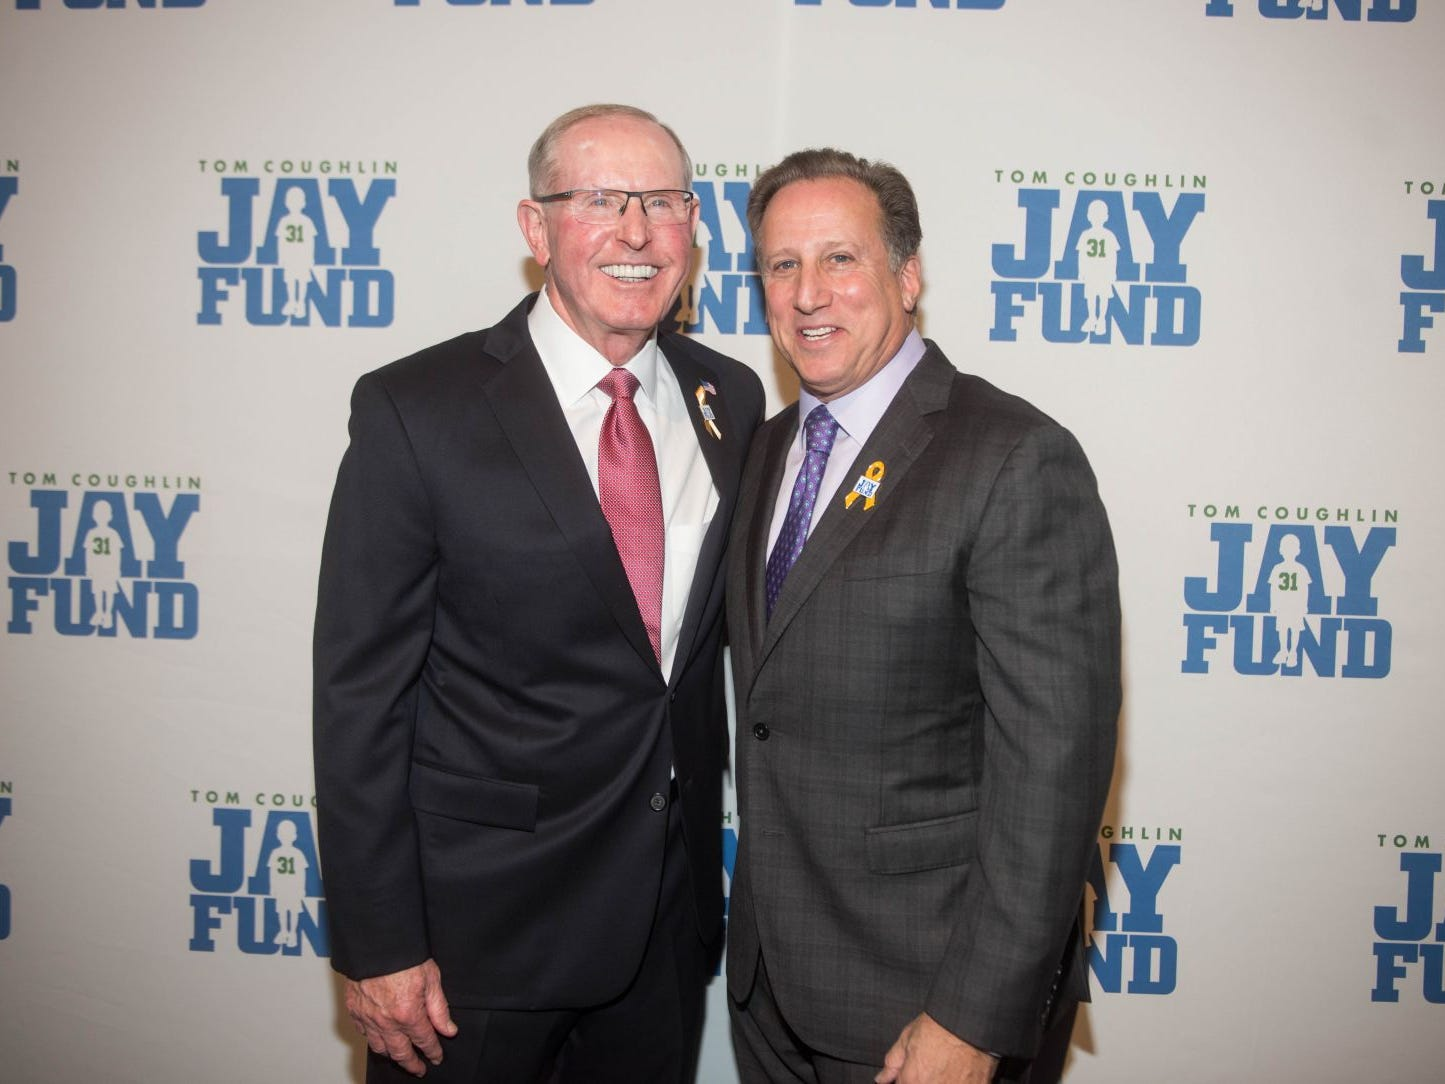 Tom Coughlin and Bruce Beck. The 14th annual Jay Fund Champions for Children Gala was held at Cipriani 42nd Street. 09/21/2018